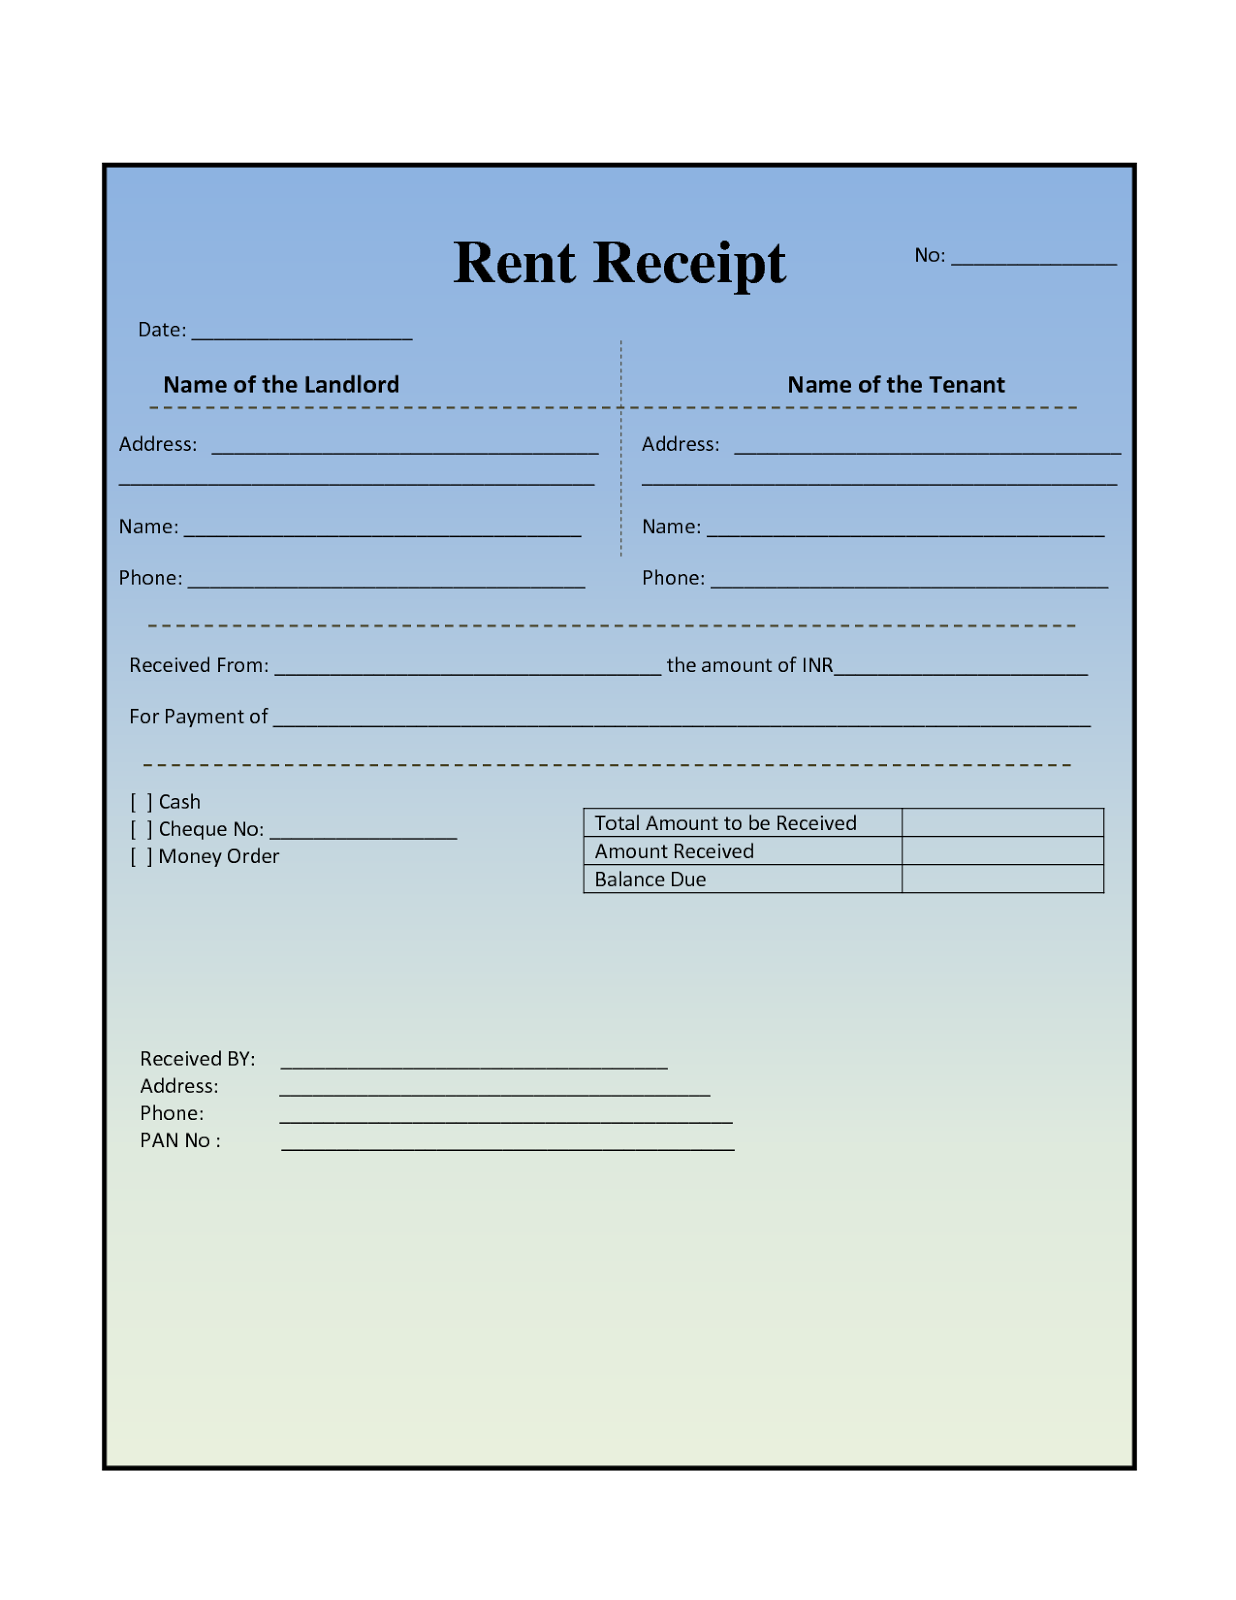 House Rental Invoice Template in Excel Format - Free Templates ...